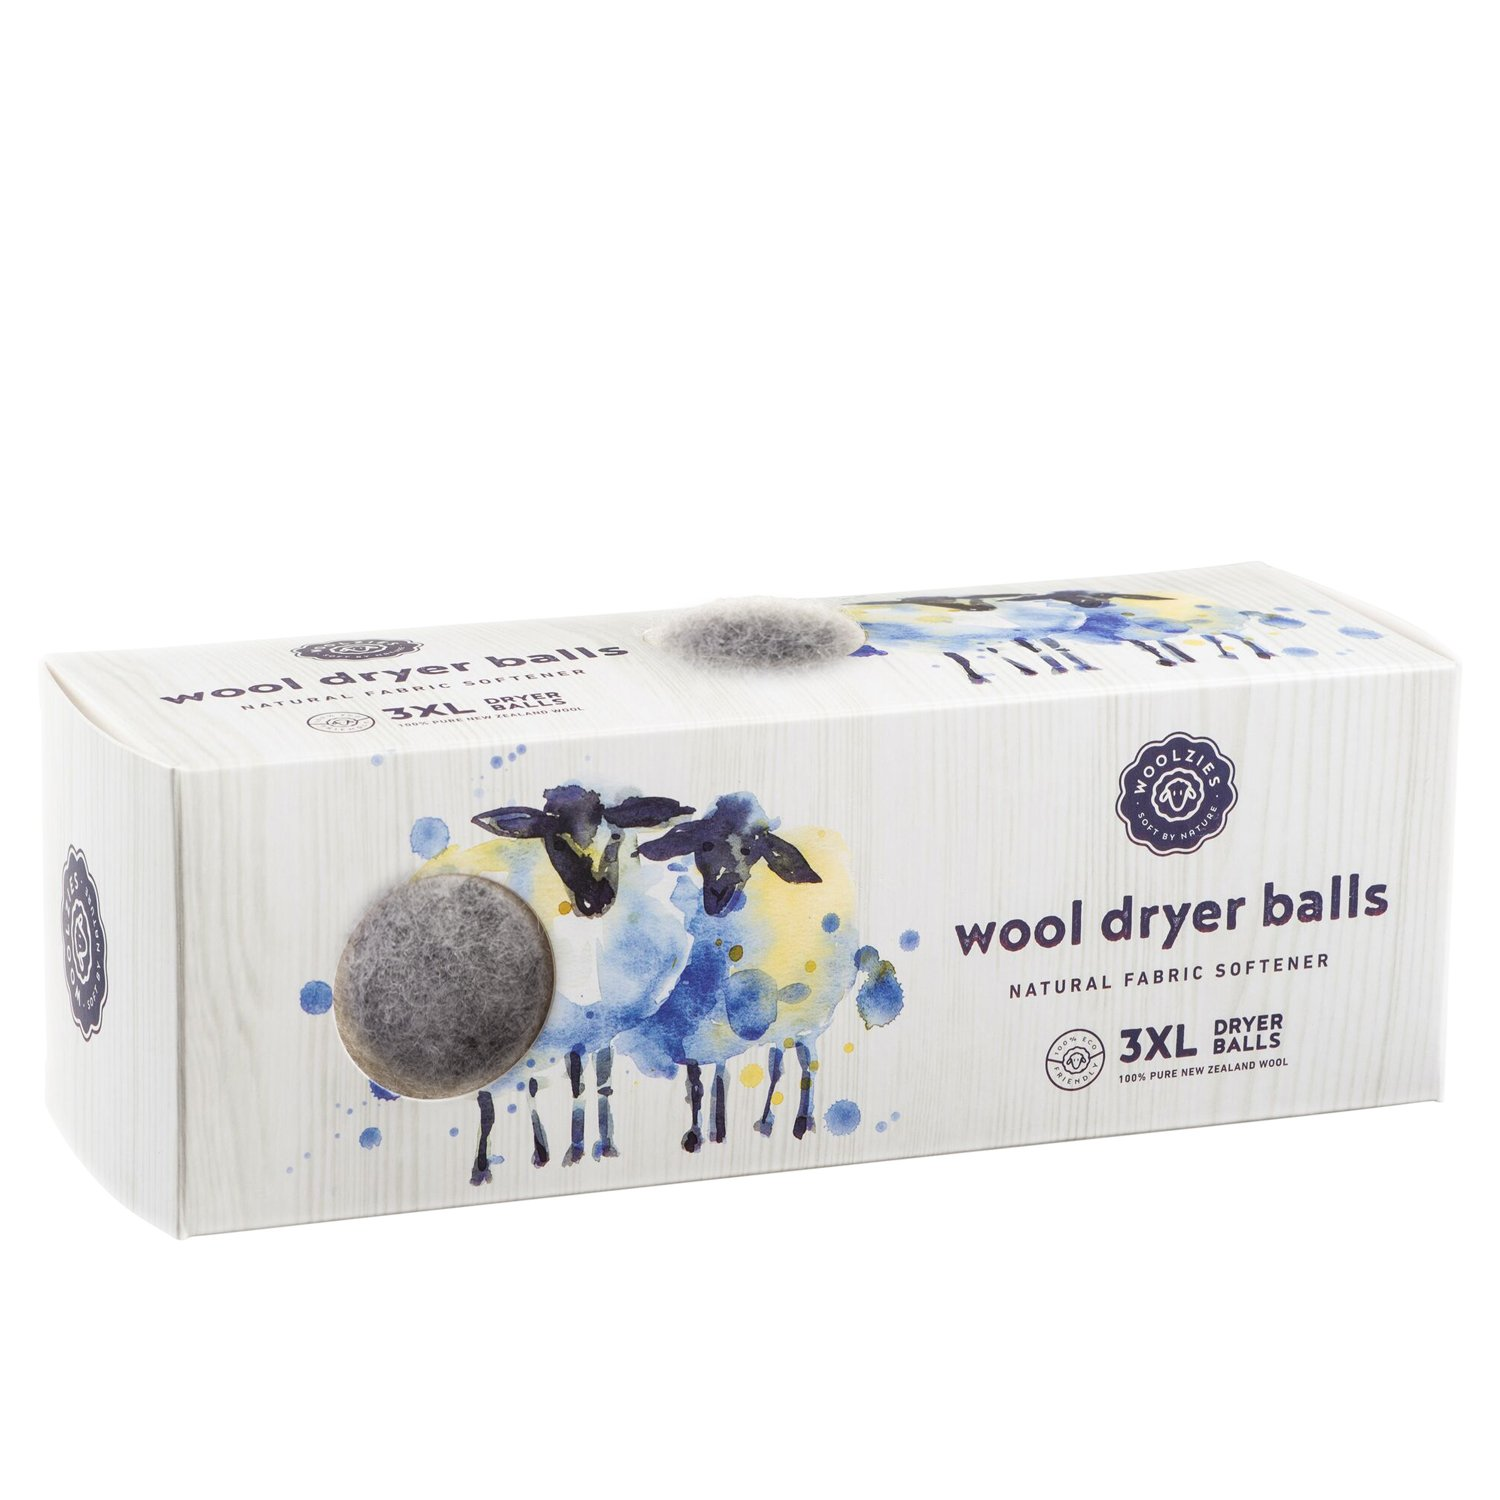 Natural Fabric Softener 2 Pack Wool Dryer Balls Woolzies